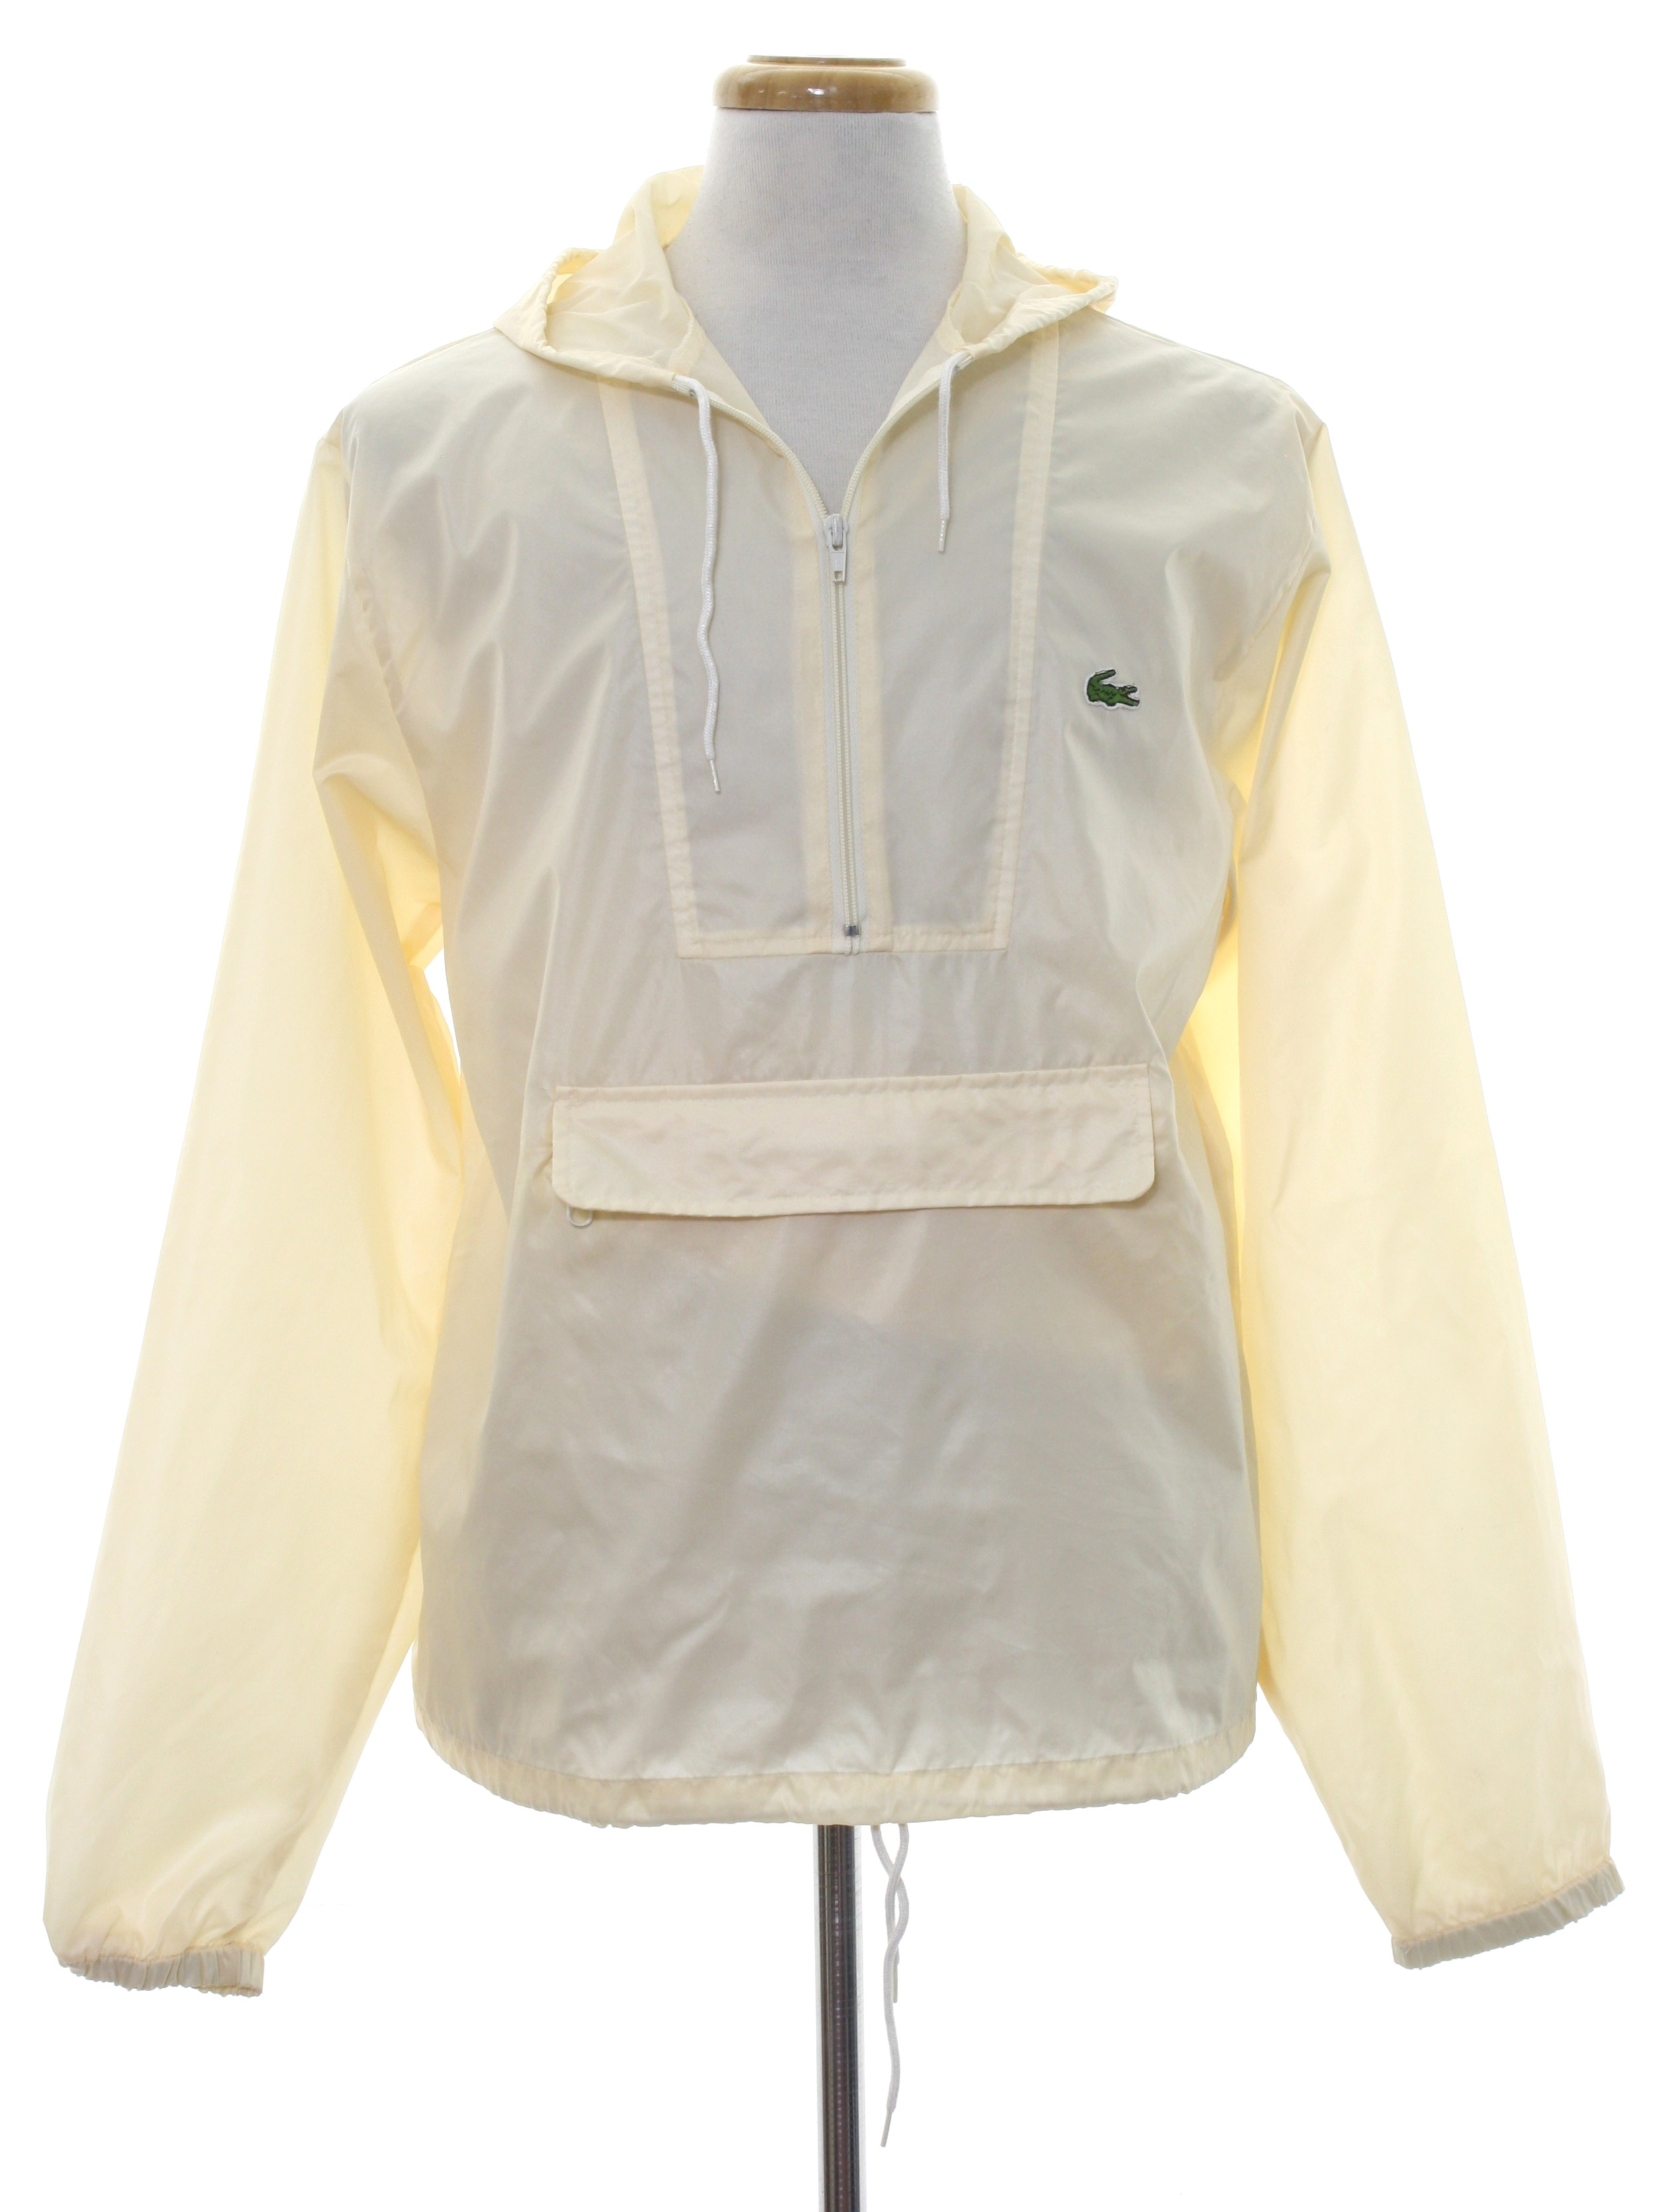 2961b5364e3c07 Izod lacoste eighties vintage jacket izod lacoste mens cream jpg 2506x3341 Lacoste  windbreaker jackets for men